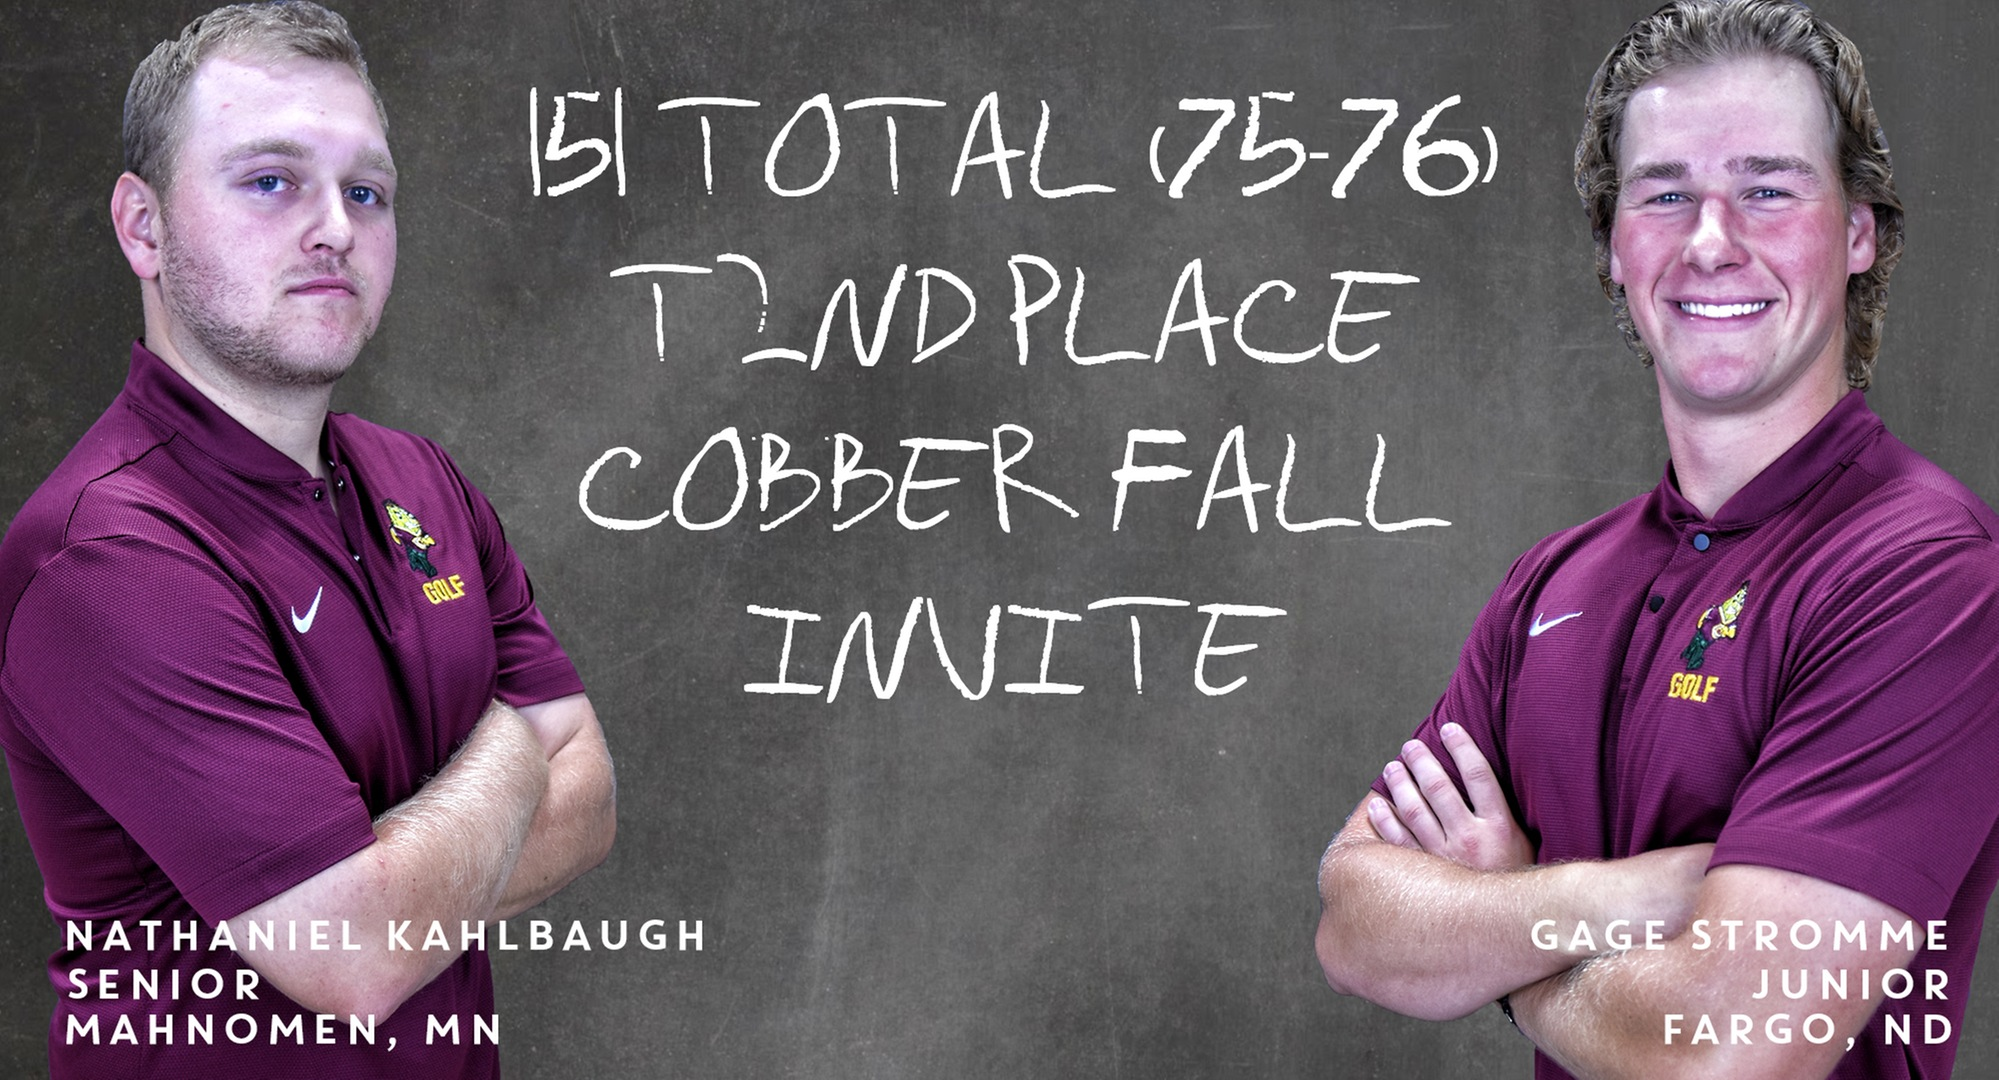 Nathaniel Kahlbaugh (L) and Gage Stromme finished in a tie for second place at the Cobber Fall Invite.